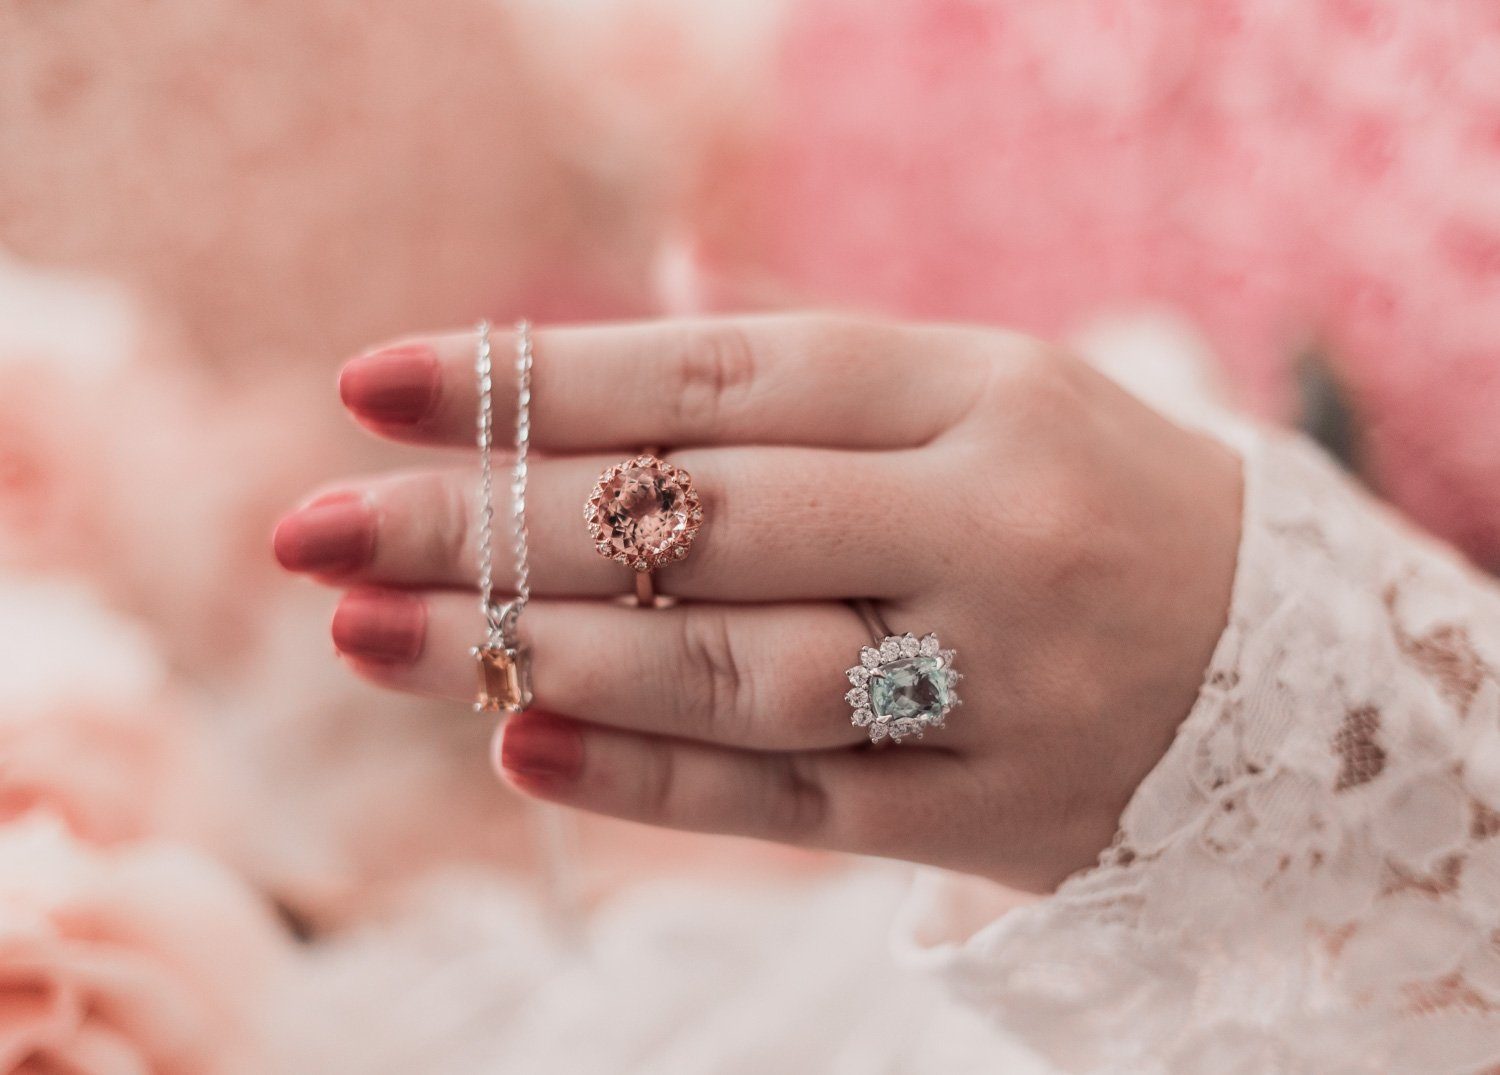 Fashion Blogger Elizabeth Hugen of Lizzie in Lace shares how to get free jewelry with the Angara referral program